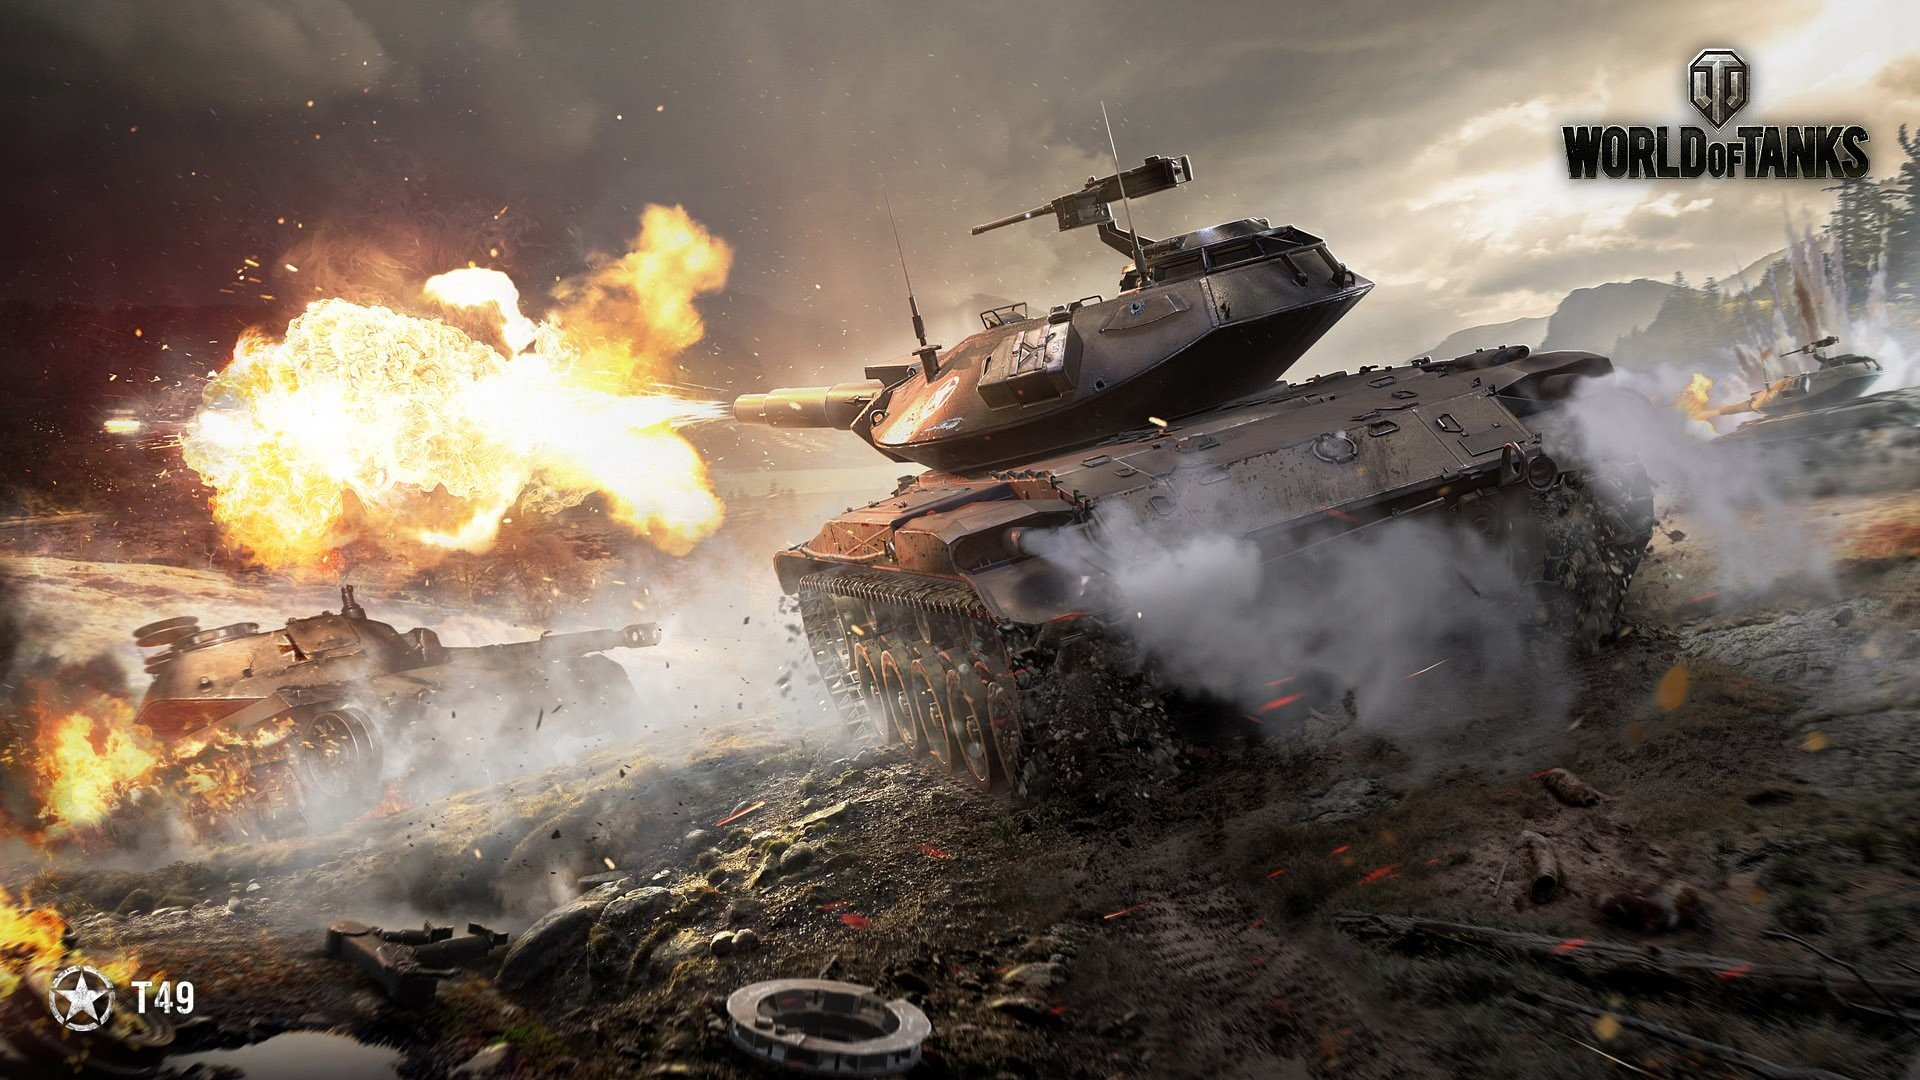 Res: 1920x1080, world of tanks t49 wallpaper and background